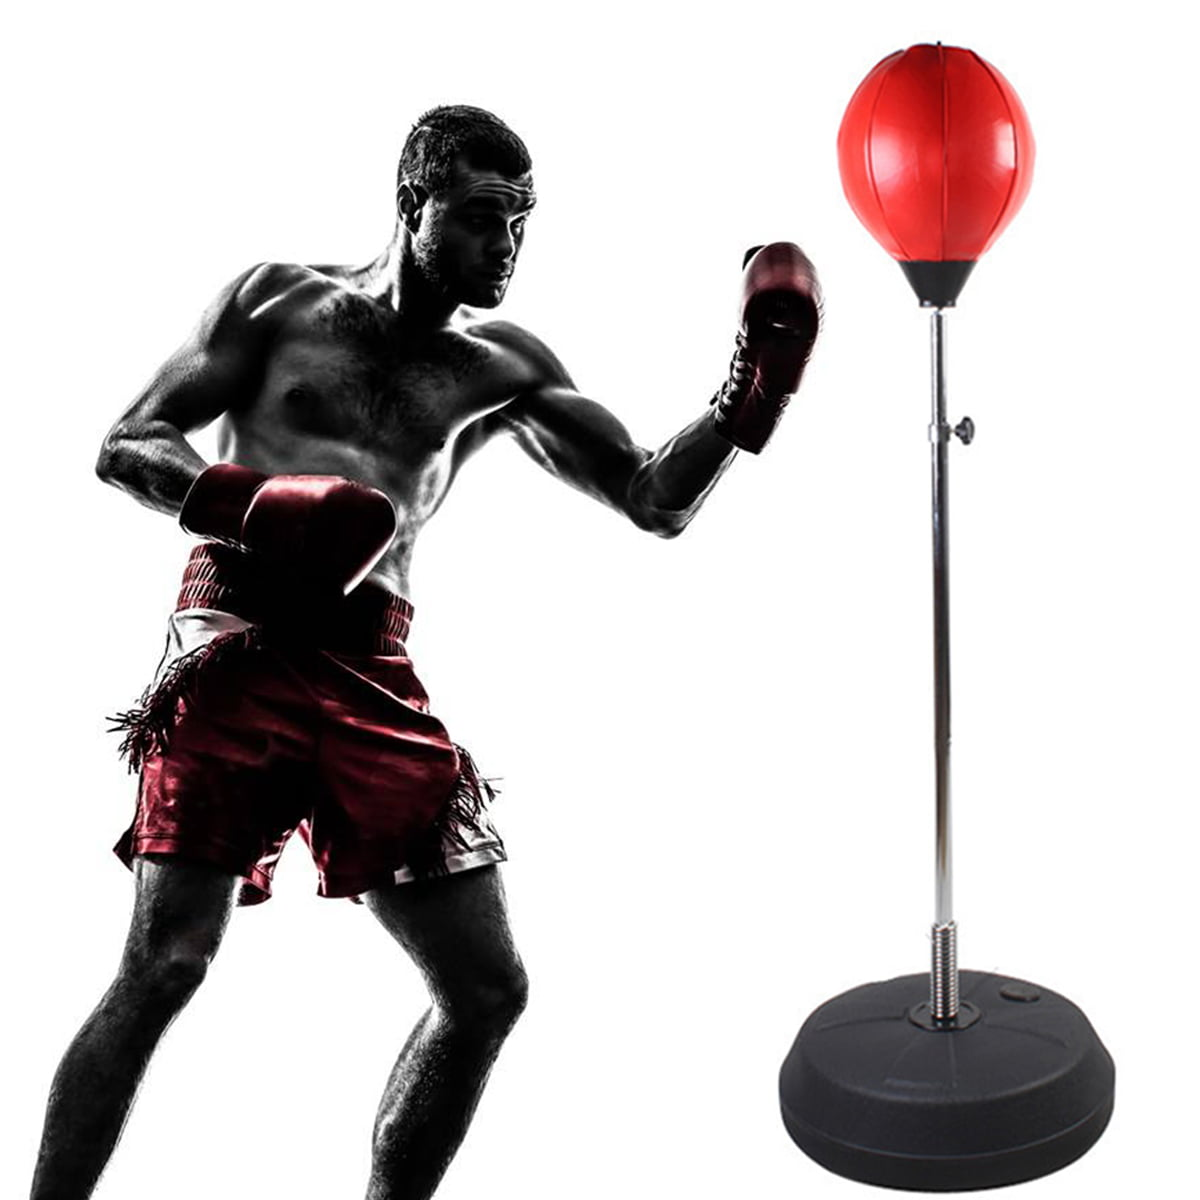 NEW STANDING ADJUSTABLE ADULT BOXING BALL AND GLOVES FITNESS TOOL SET